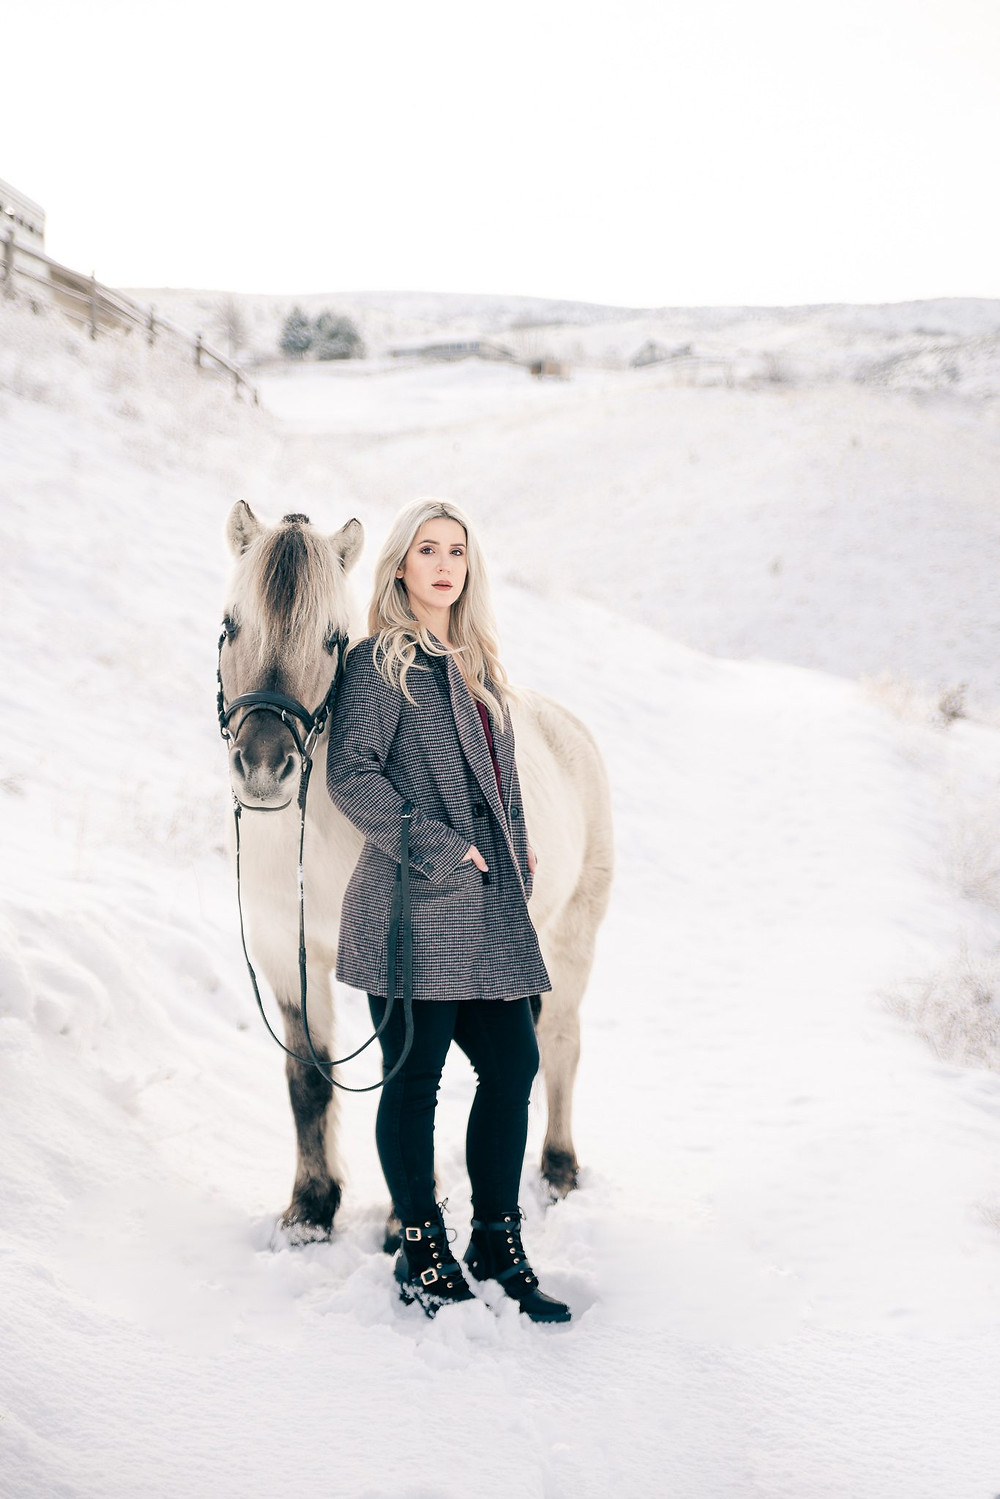 A blonde girl standing next to her Fjord horse in the snow in Wenatchee